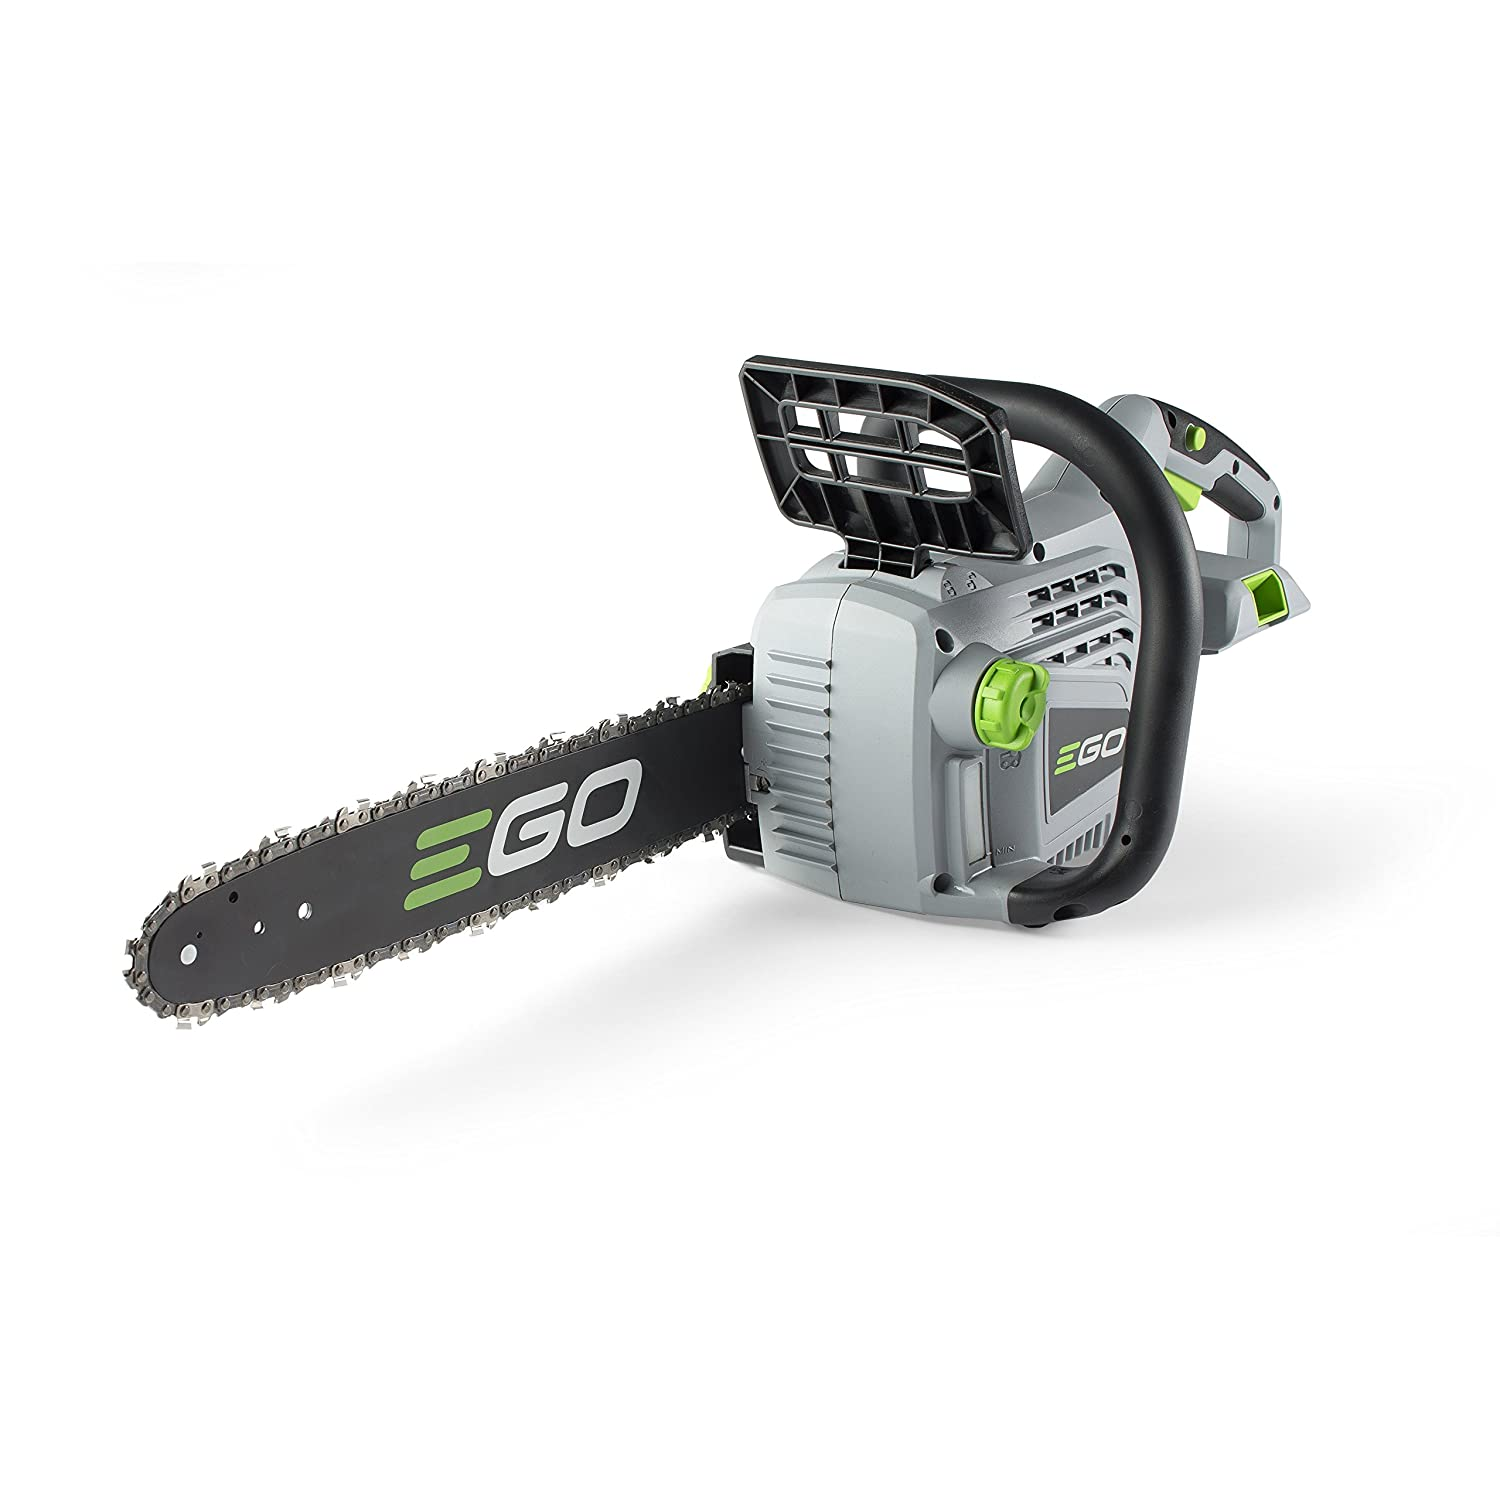 EGO Power+ CS1400 featured image 1